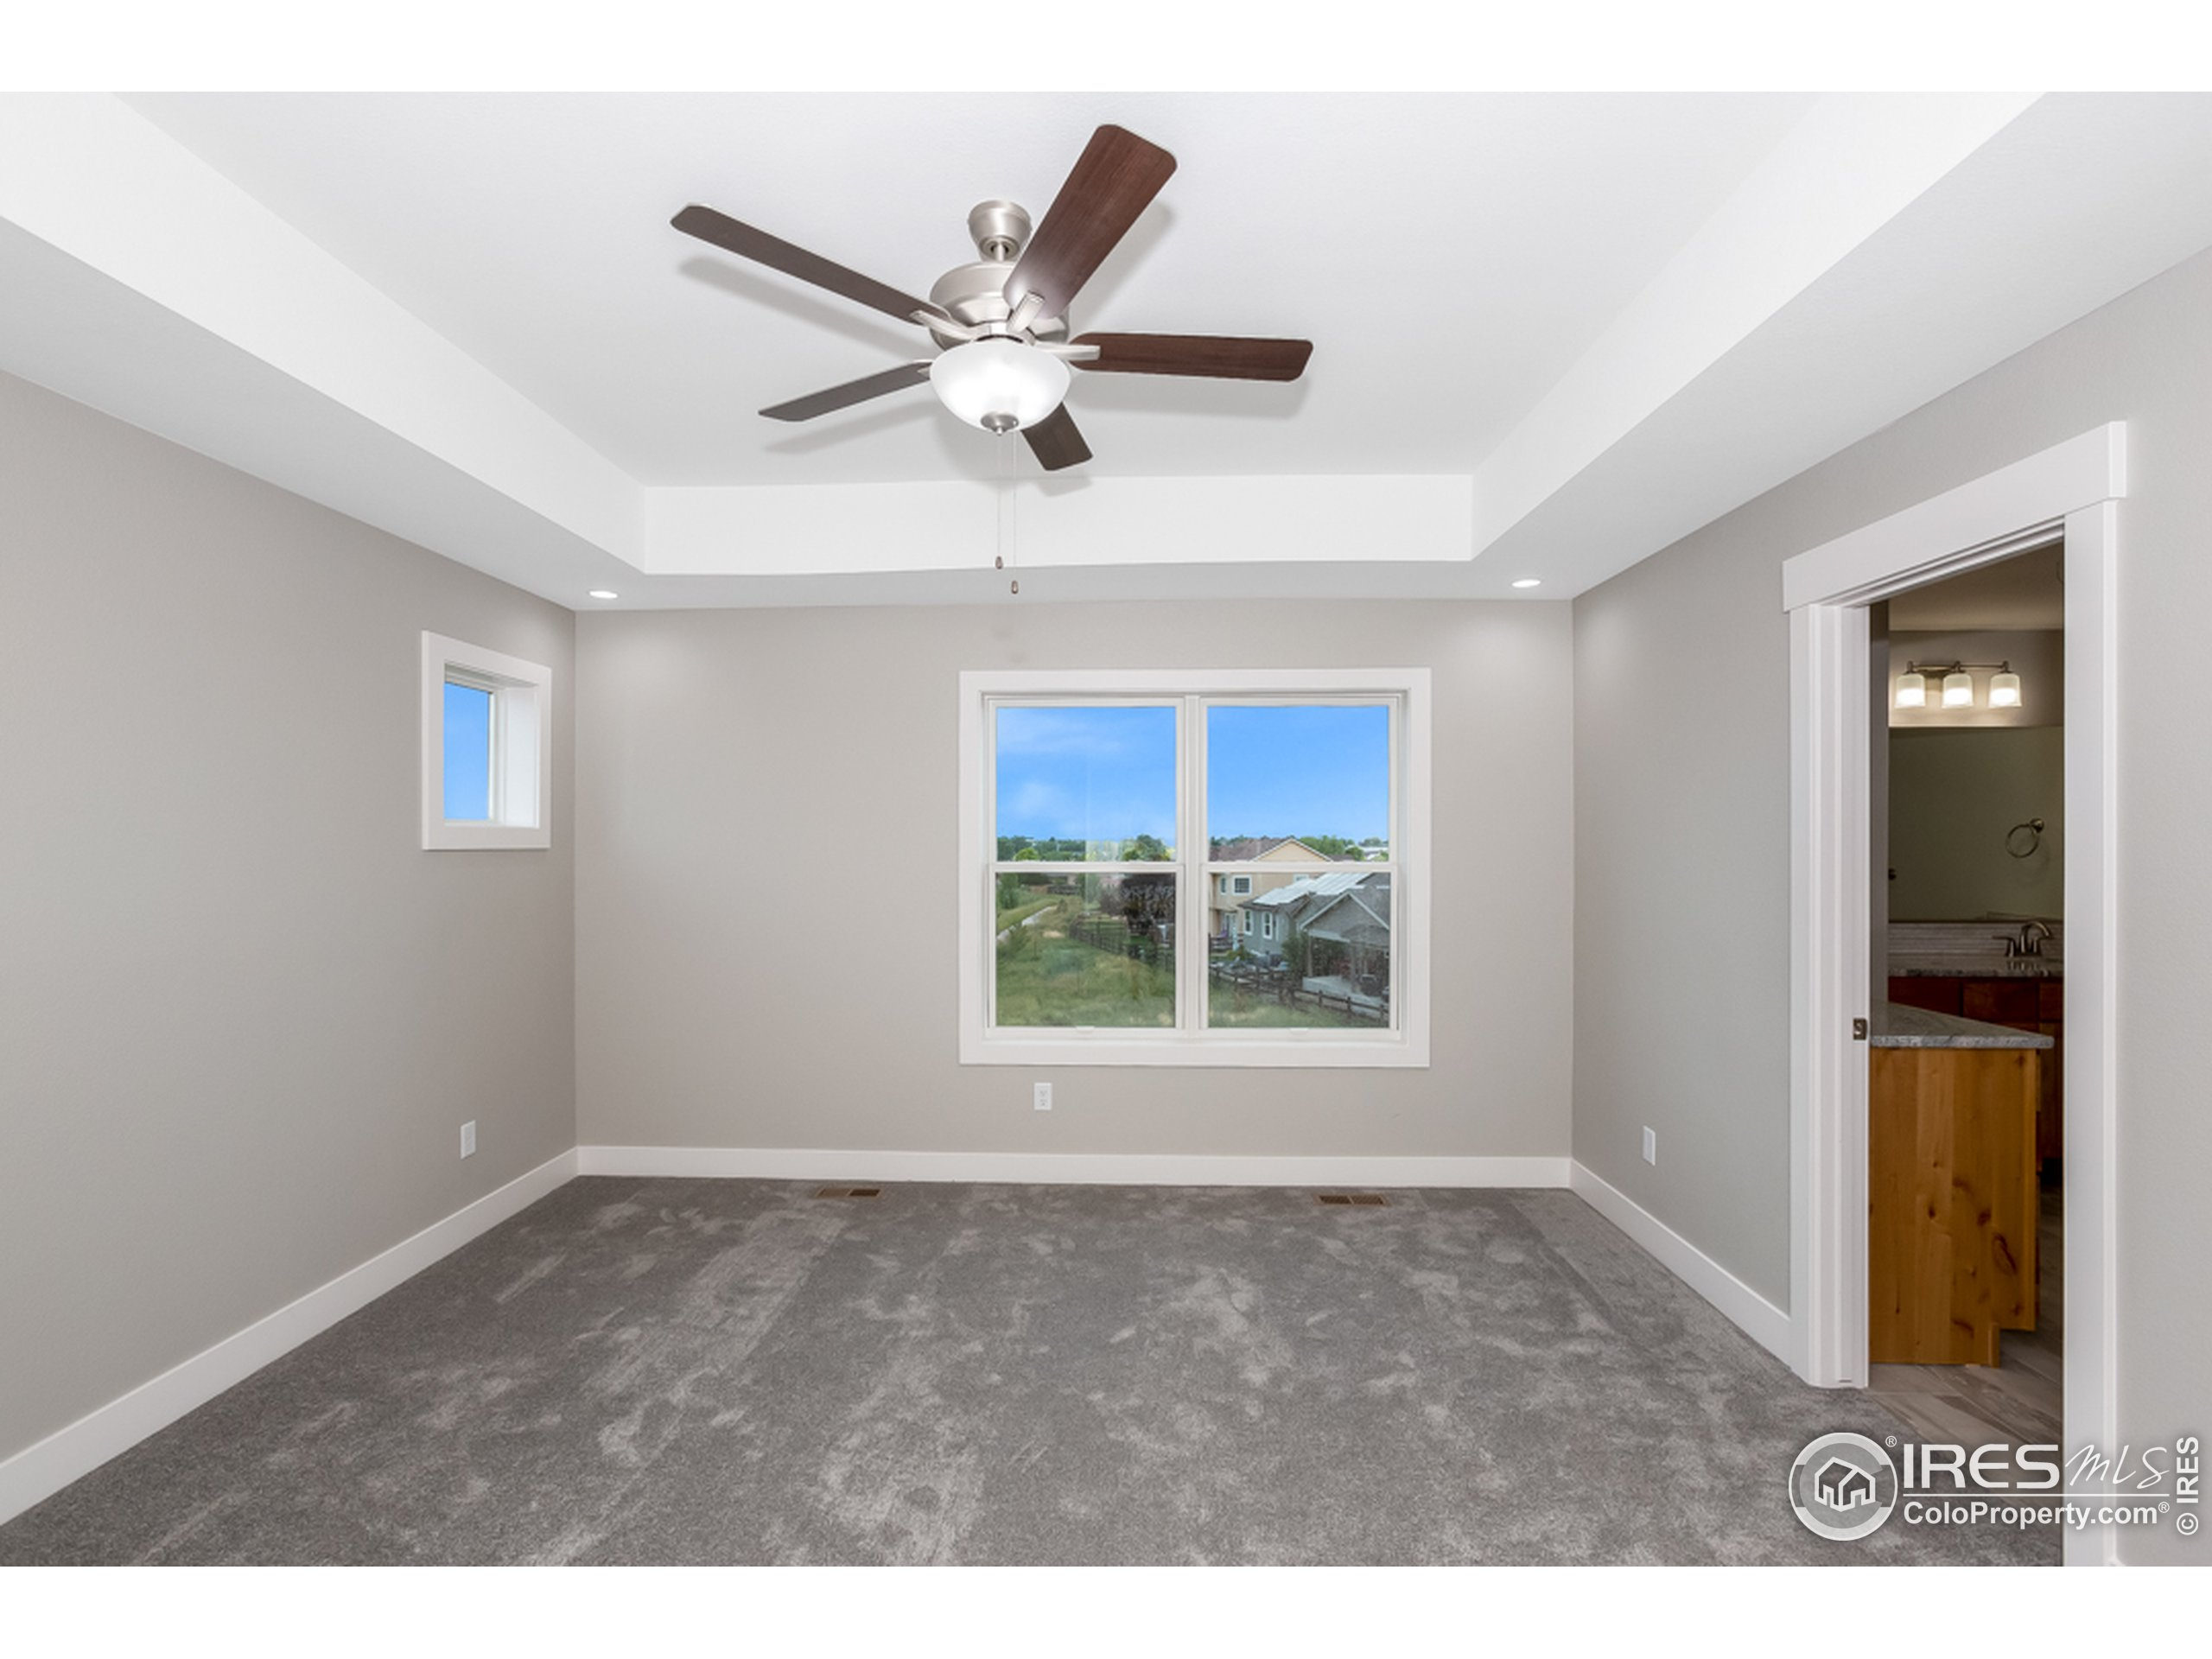 Featuring daylight windows and a tray ceiling